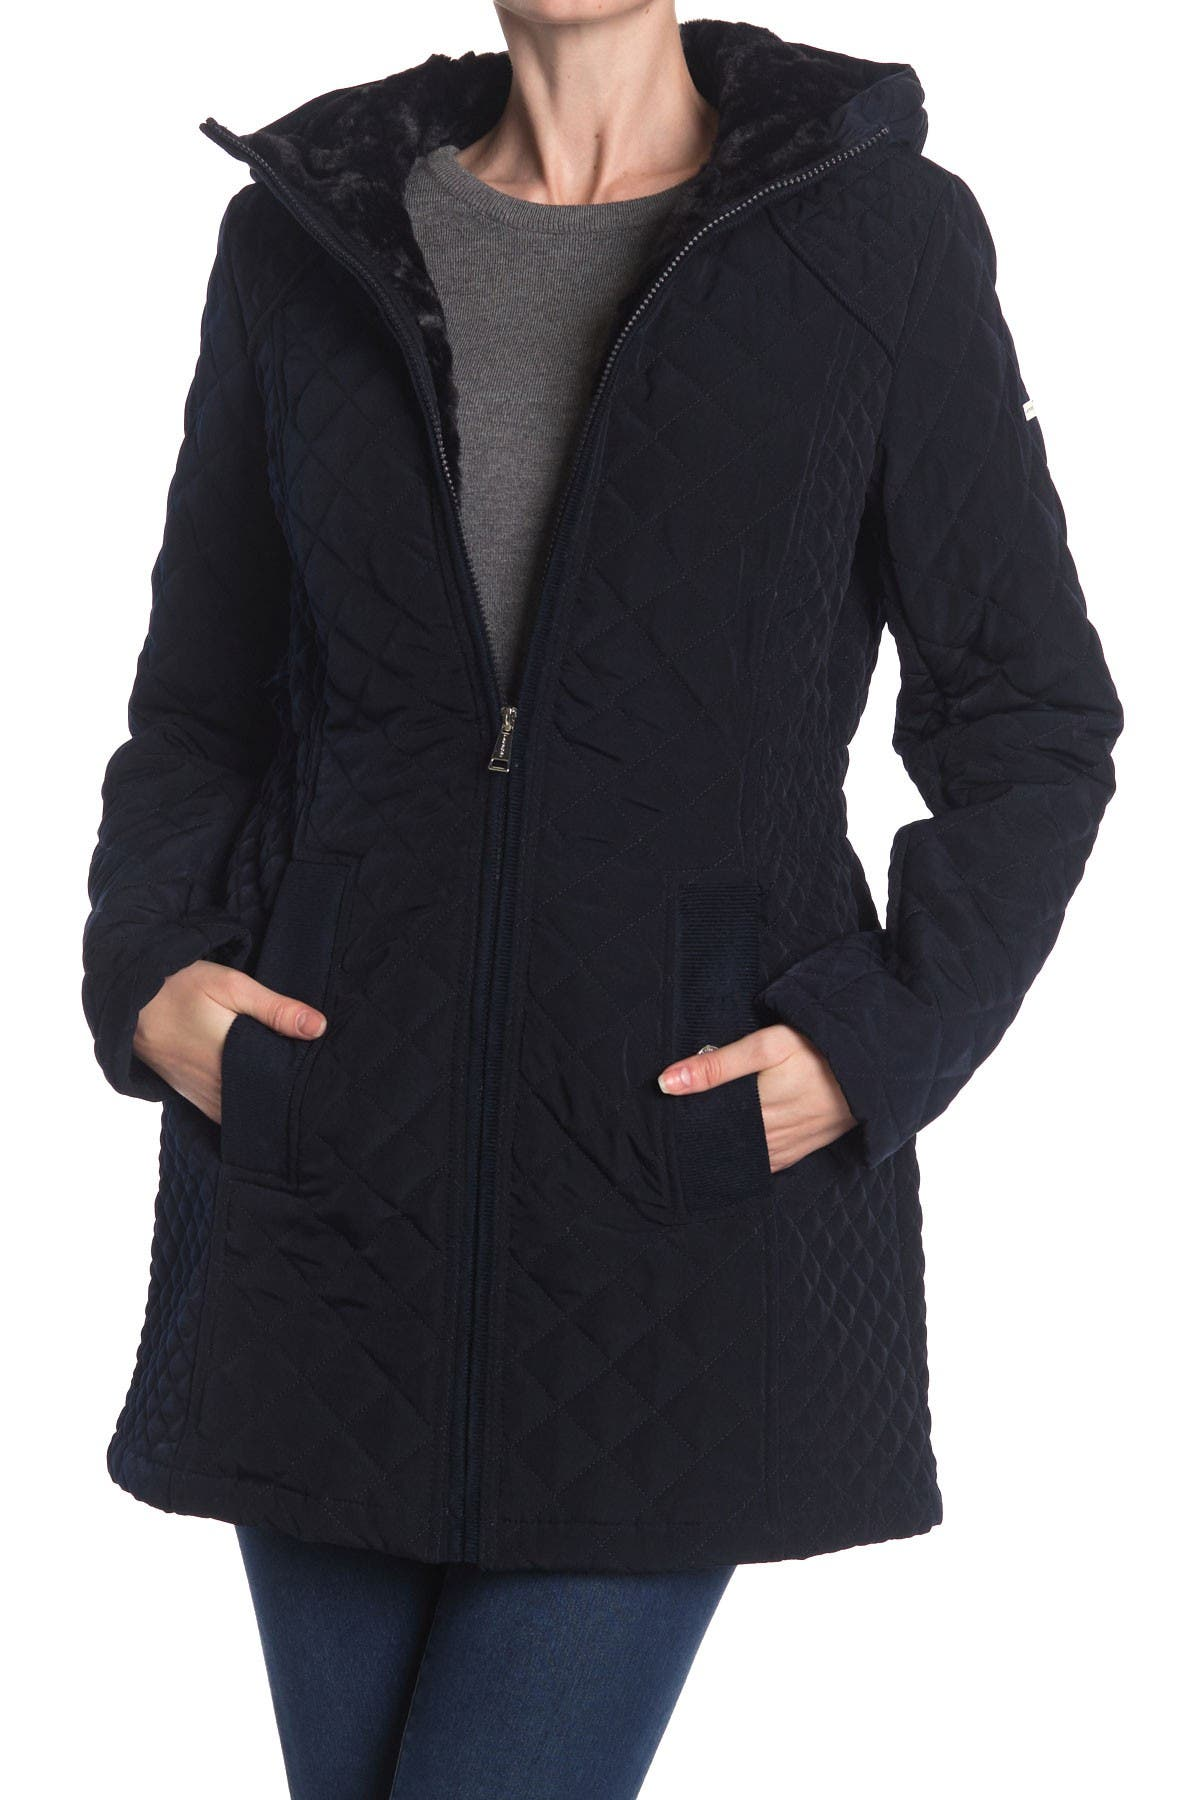 Laundry By Shelli Segal Center Zip Quilted Faux Fur Lined Hooded Jacket